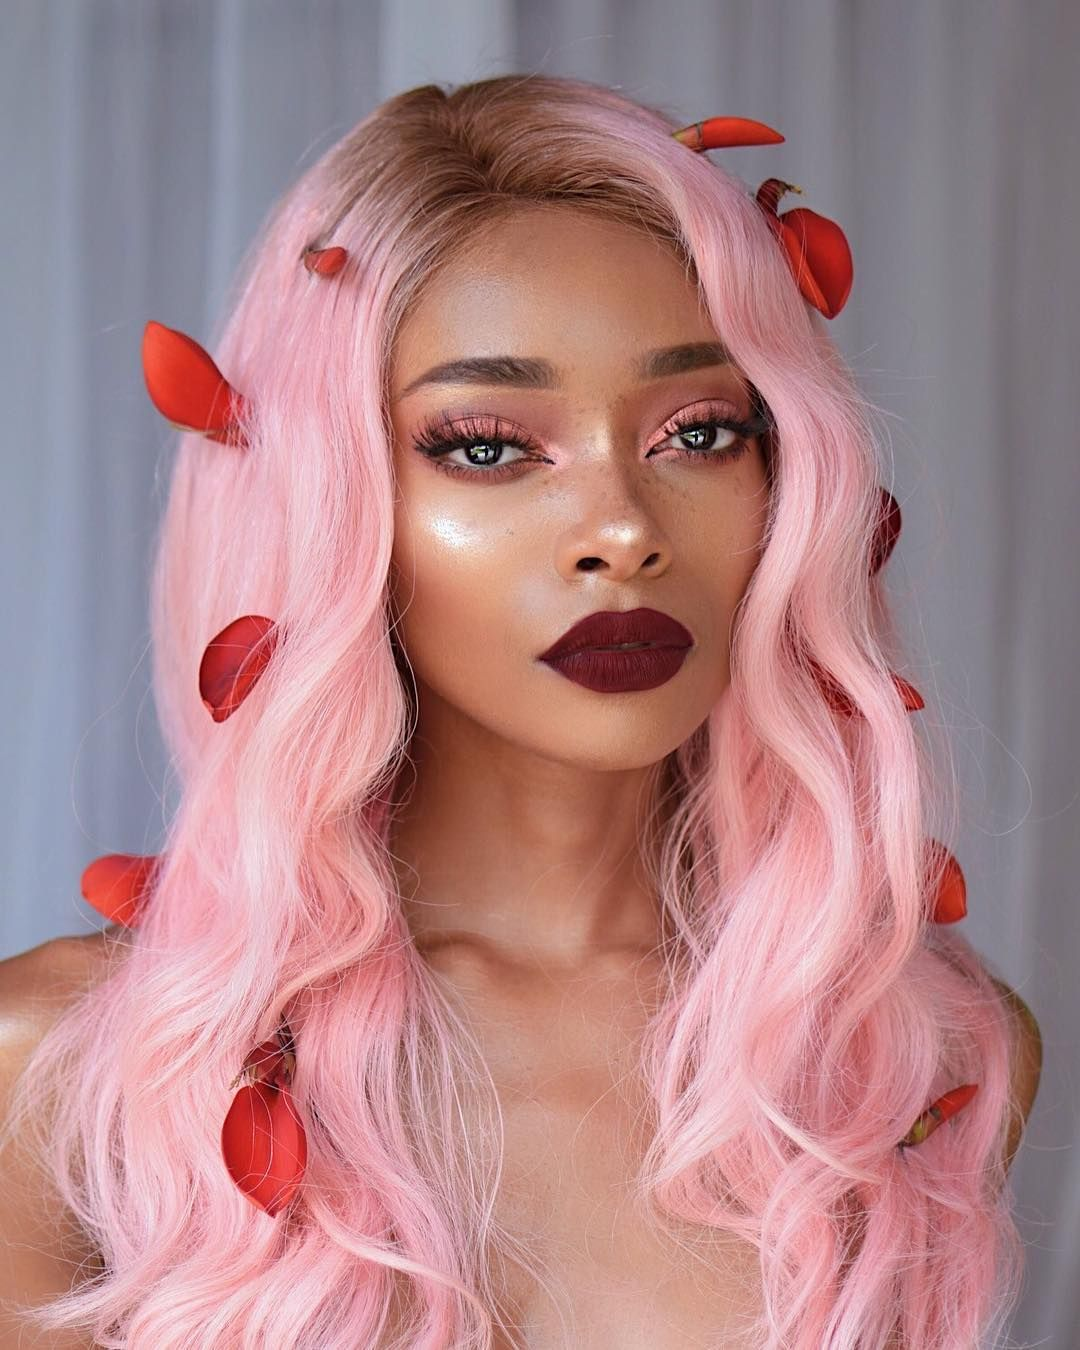 16 6k Likes 201 Comments Nyane Lebajoa Nyane On Instagram Which Colour Do You Prefer Pink Or W Cool Hair Color Hair Color For Dark Skin Cool Hairstyles